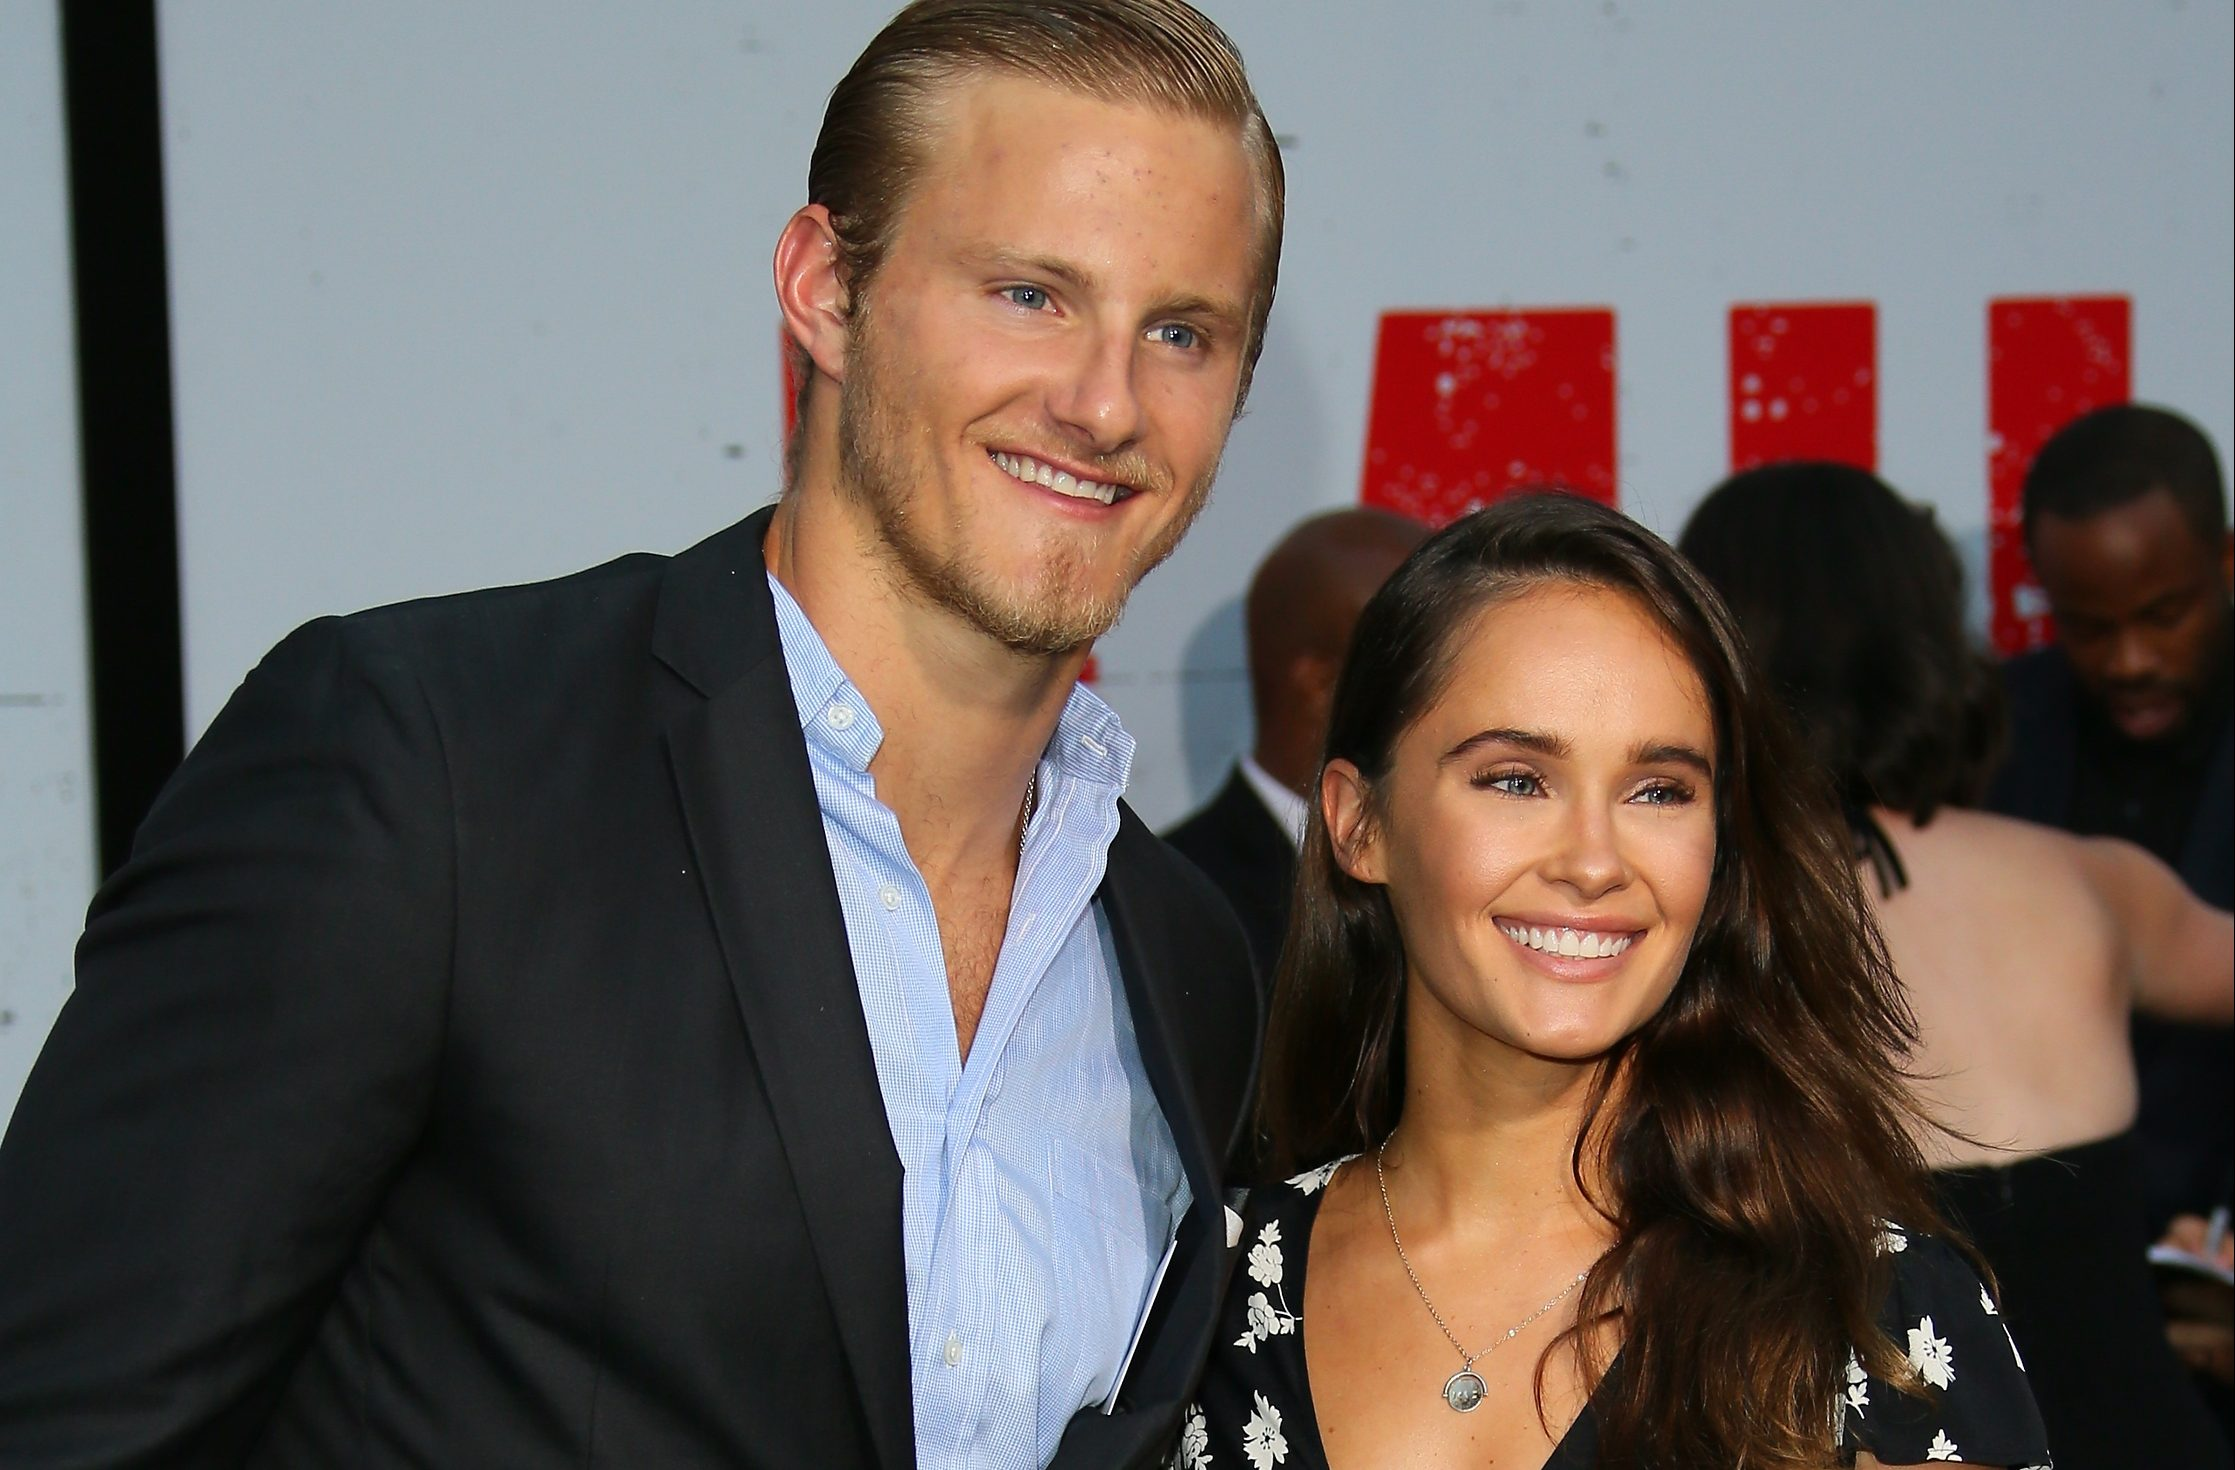 Vikings' Alexander Ludwig melts hearts as he swoons over co-star girlfriend Kristy Dinsmore